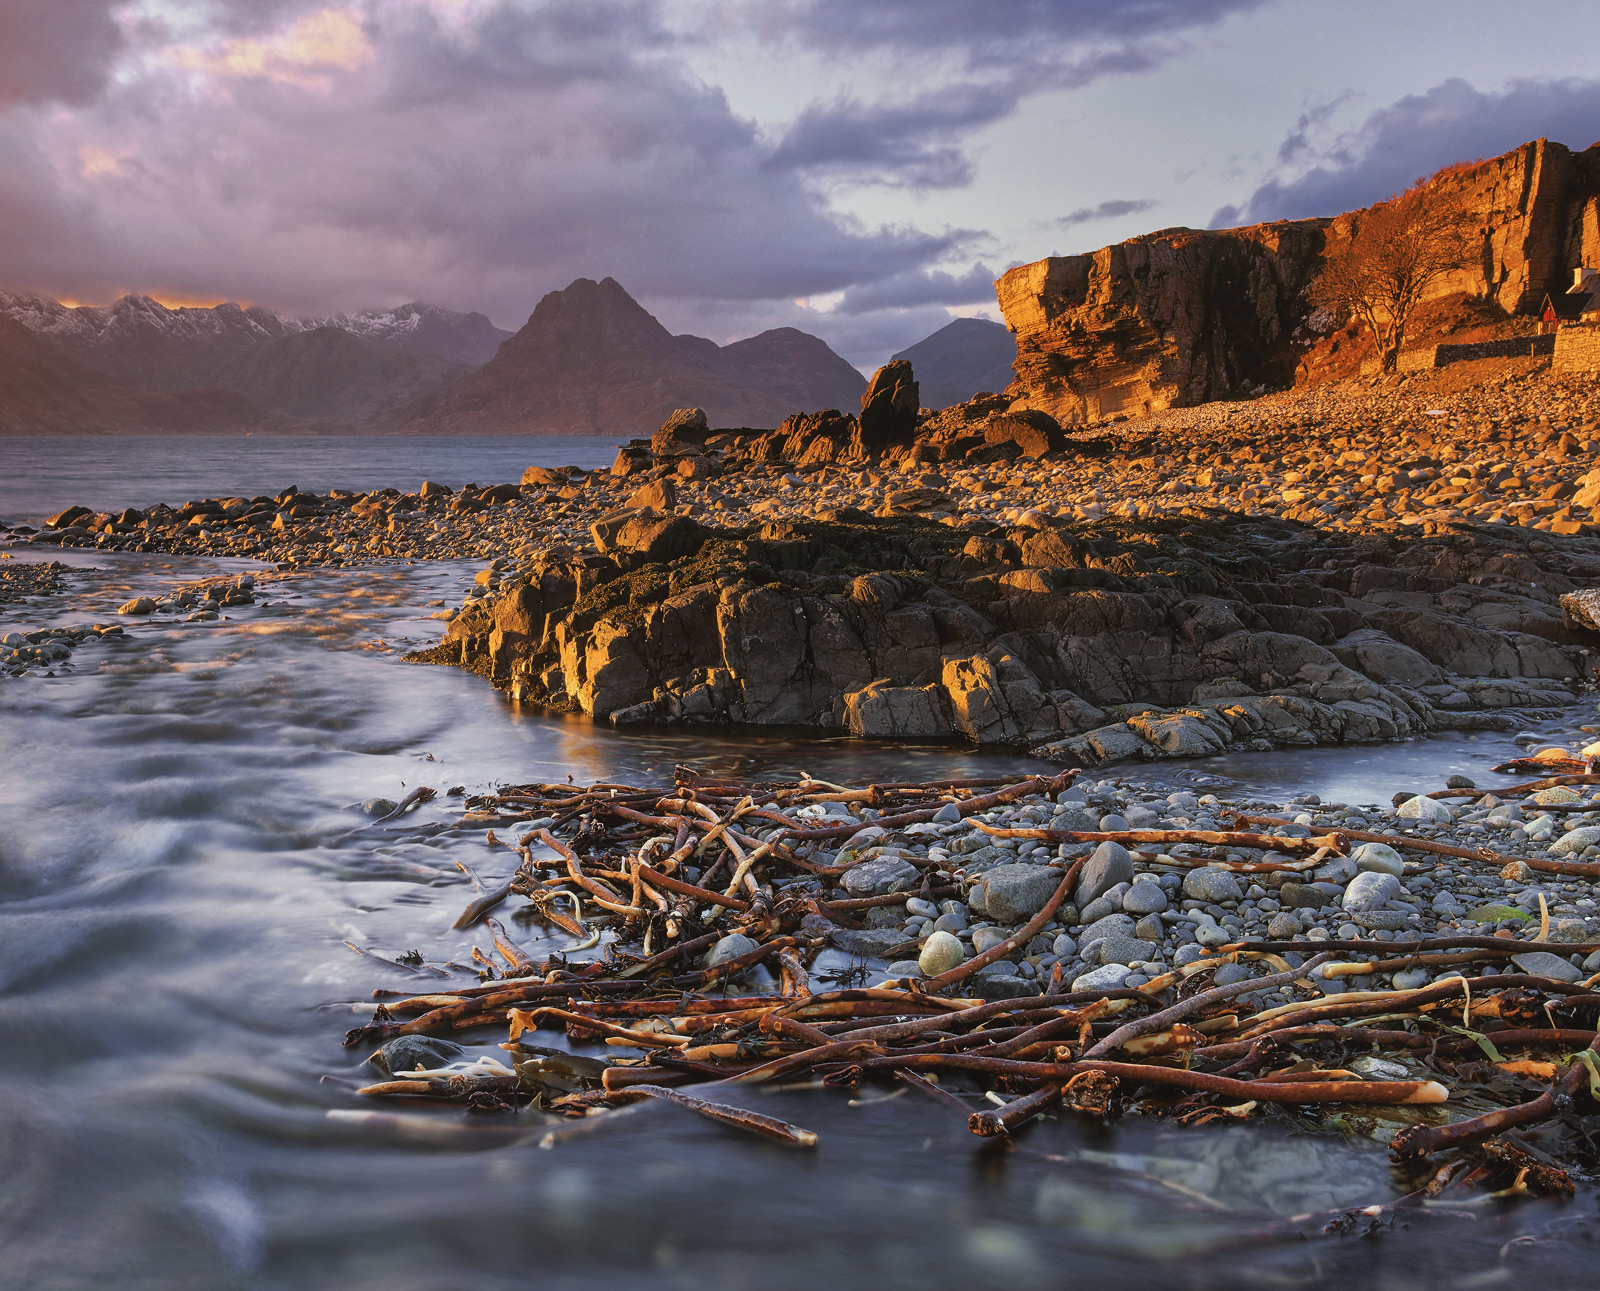 A Spring evening on the beach at Elgol where a small stream bounces over the rough rock beach and meanders into the sea...